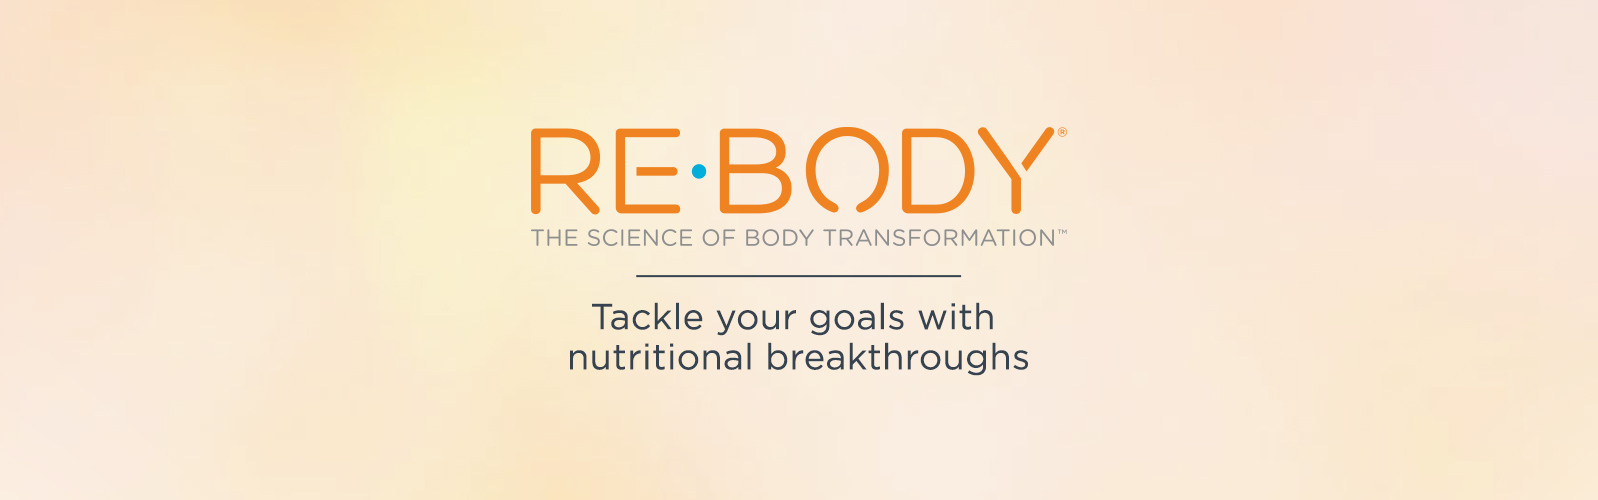 Re-Body. The Science of Body Transformation. Tackle your goals with nutritional breakthroughs.